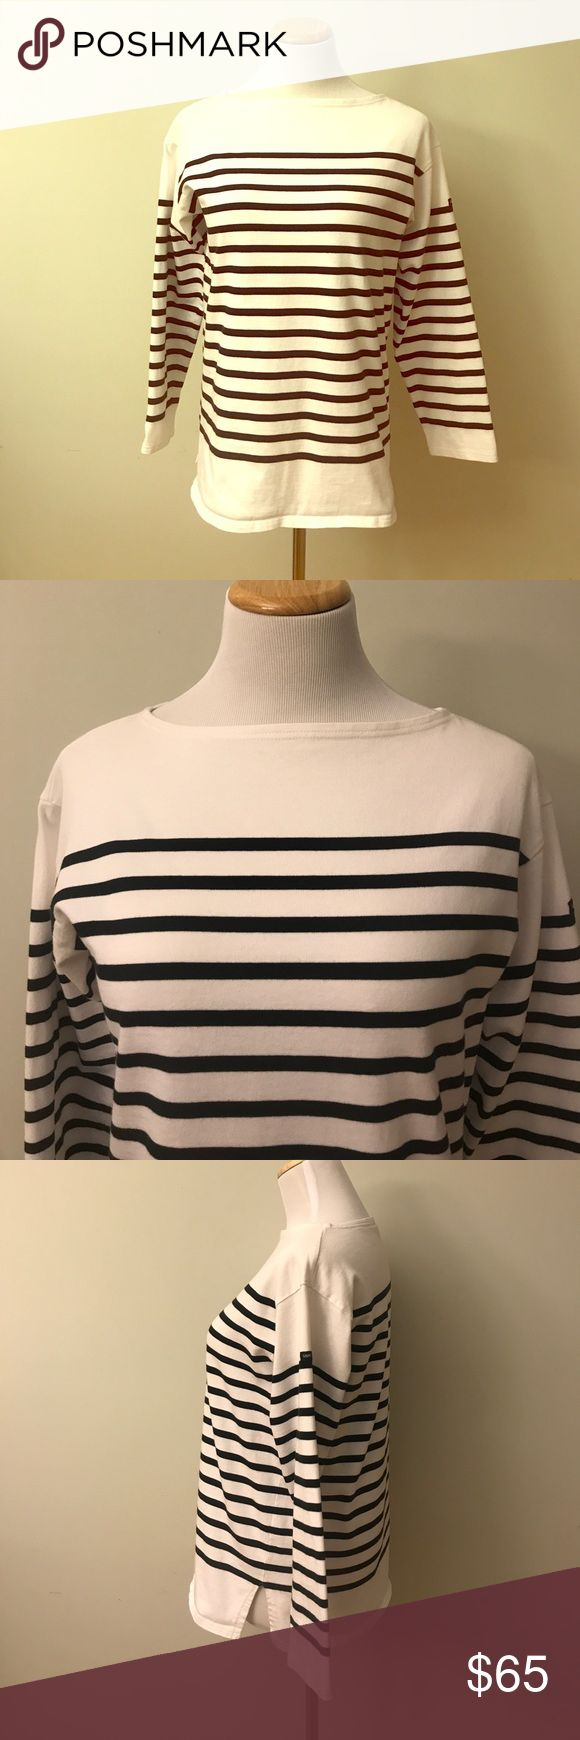 "Saint James Nautical Stripe Shirt Size M This Saint James Nautical Stripe shirt size M is in excellent pre-owned condition. It is a Breton Classics collection shirt. 100% cotton; Boat neckline; Armpit to armpit laying flat is 19""; it is 26"" long and sleeves are 19"". Made in France Saint James Tops Tees - Long Sleeve"